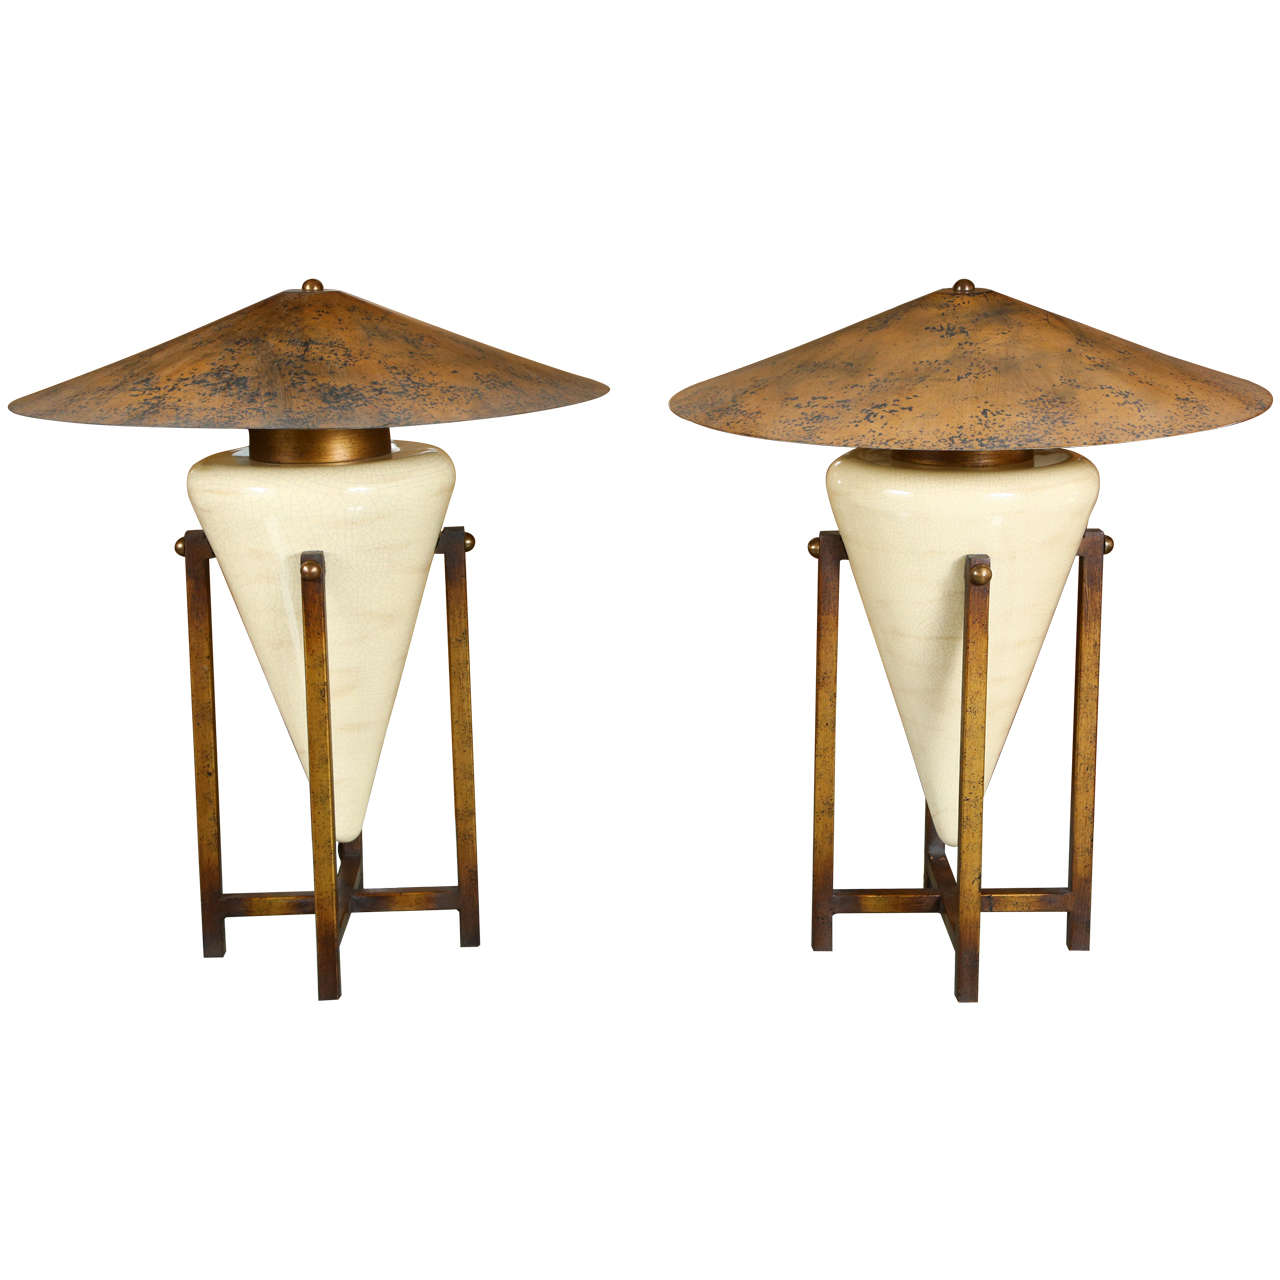 Pair Of Unusual Table Lamps With Ceramic Bases In Antiqued